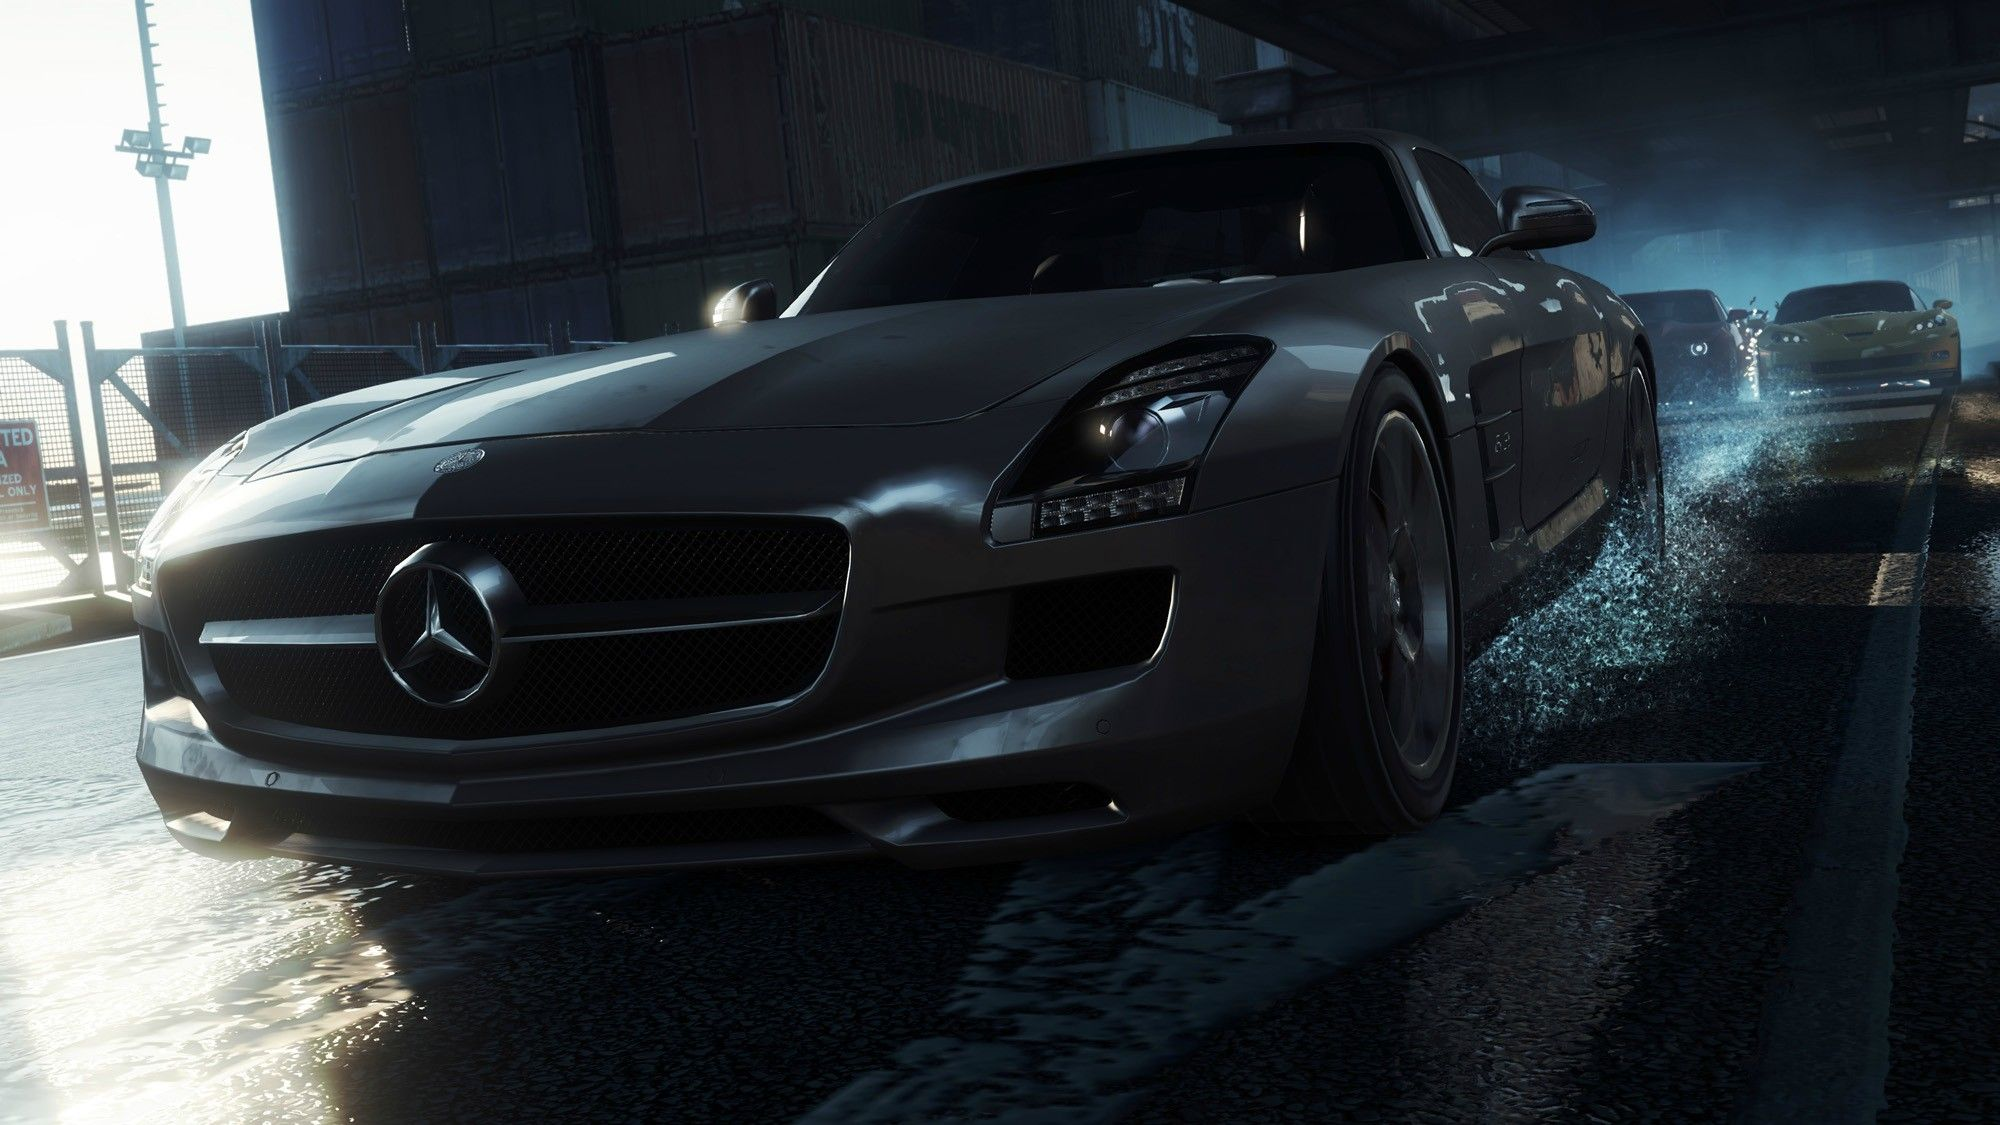 Nfs Most Wanted 2 Cars Wallpapers Need For Speed Most Wanted Review Ps3